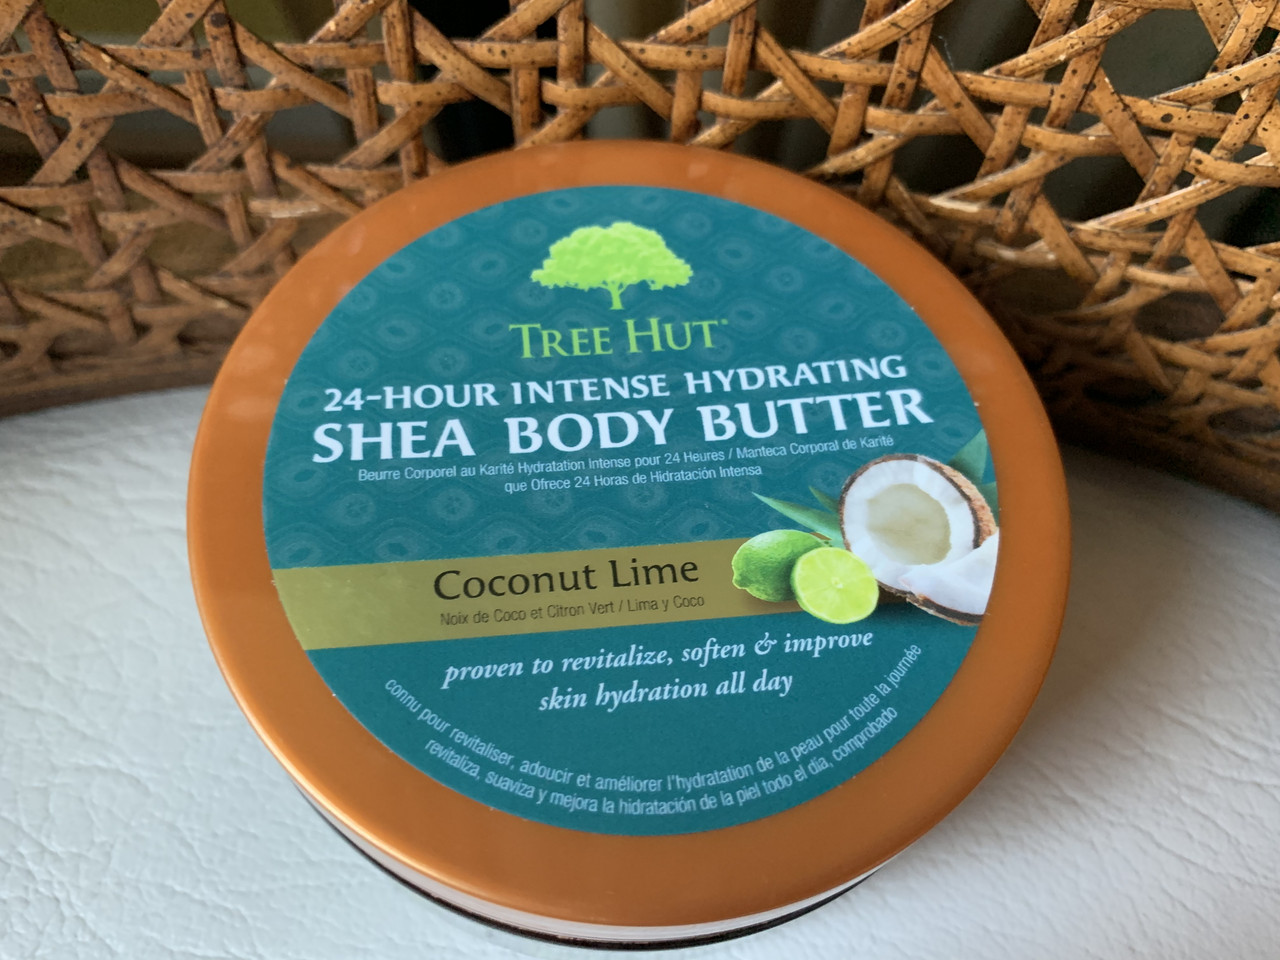 Баттер для тела Tree Hut Shea Body Butter   COCONUT LIME